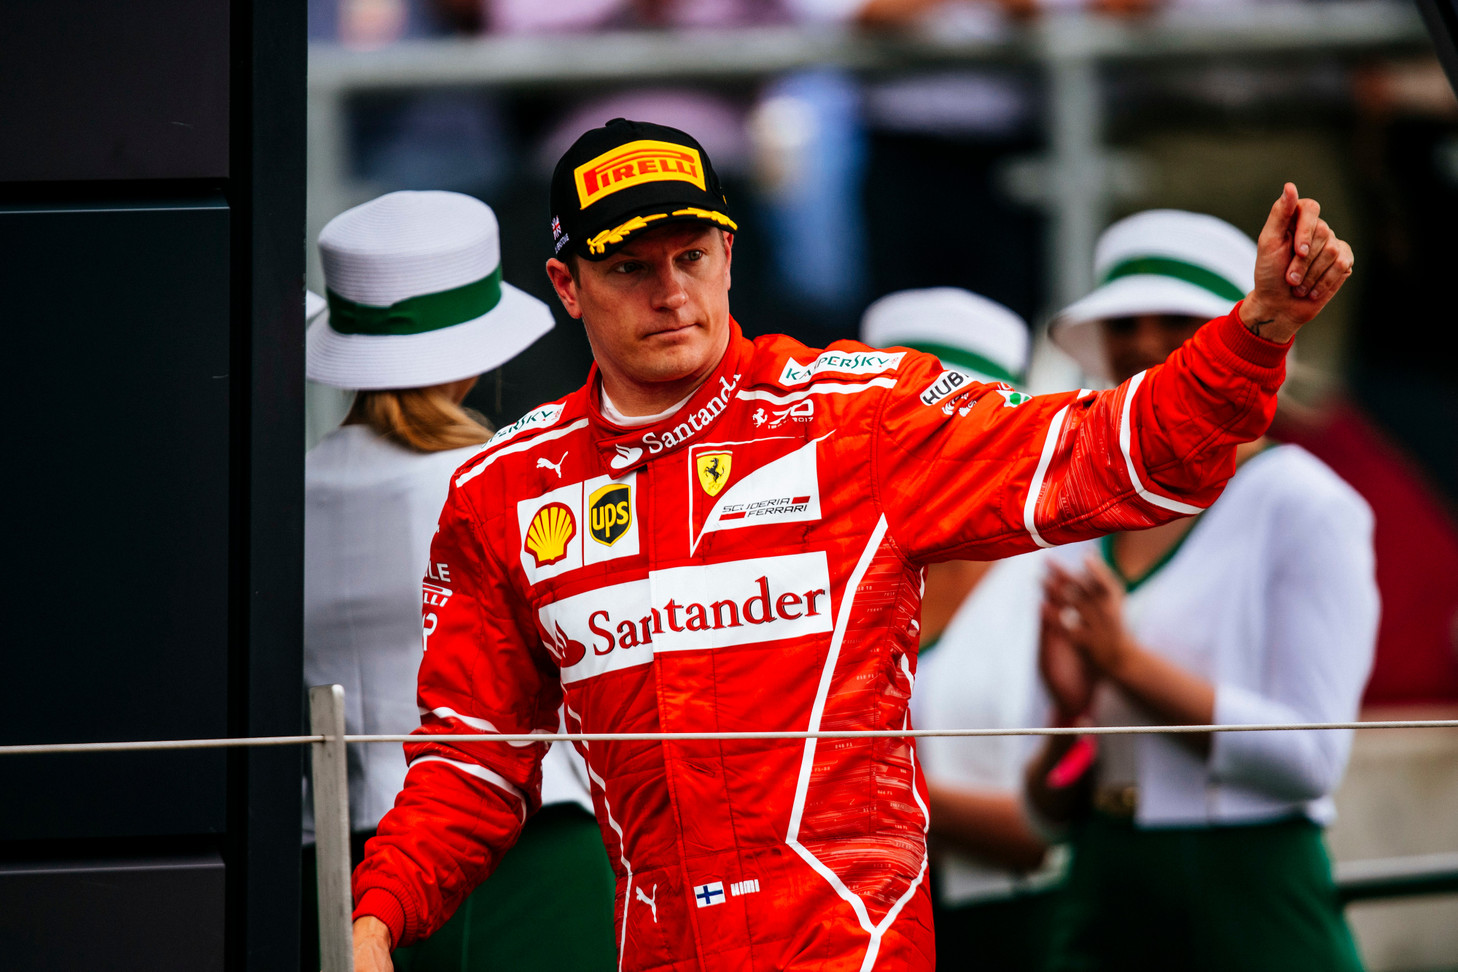 Ferrari retains Raikkonen for 2018 season